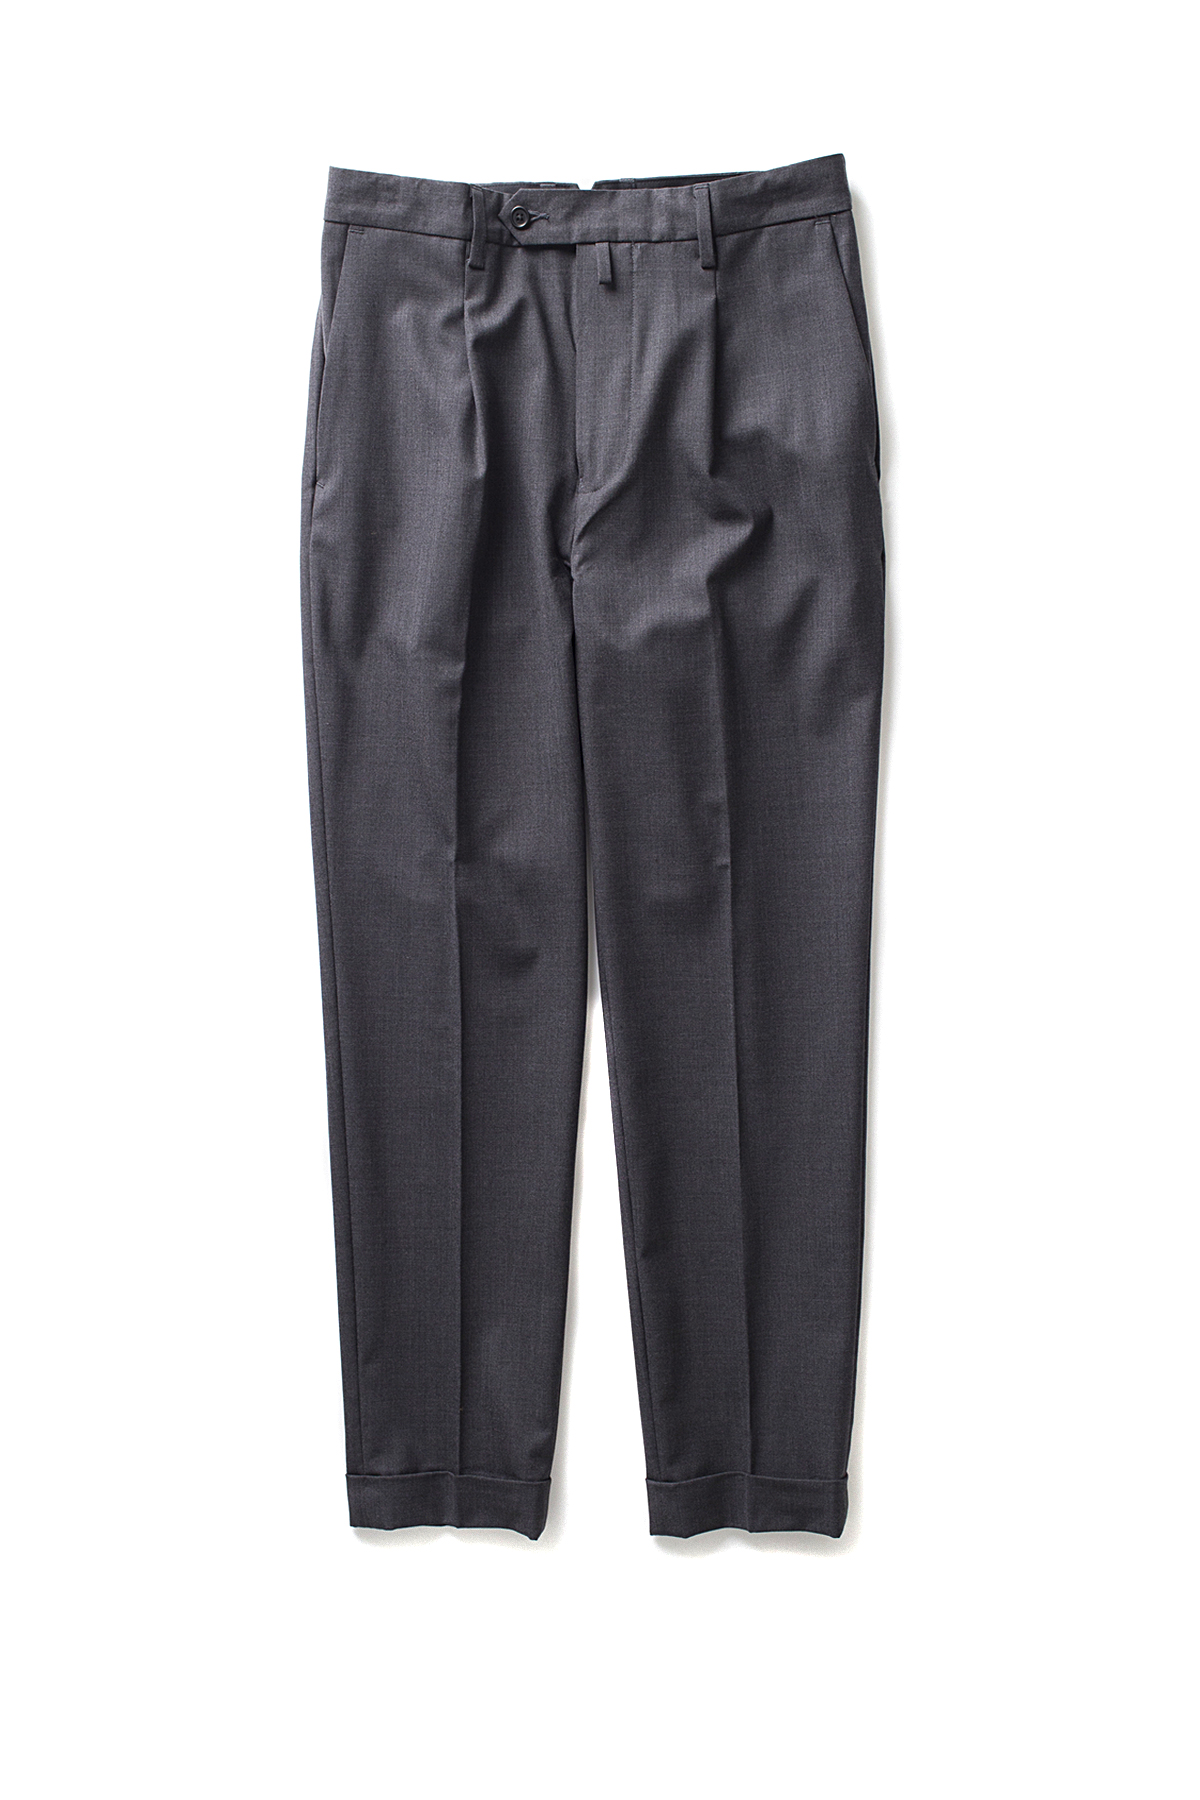 A vontade : 1 Tuck Tropical Trousers (Charcoal)